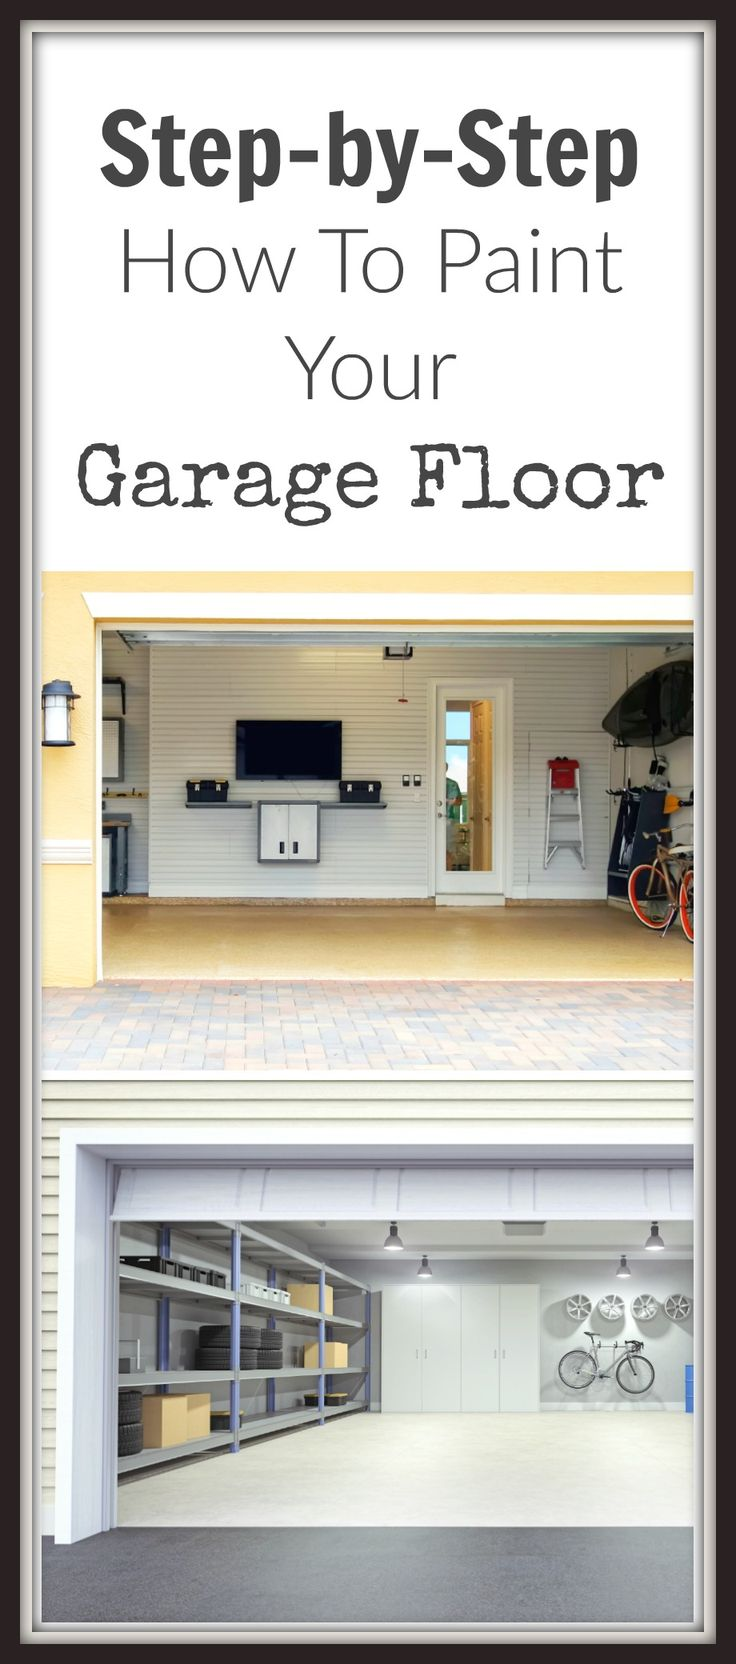 How+to+Paint+Your+Garage+Floor